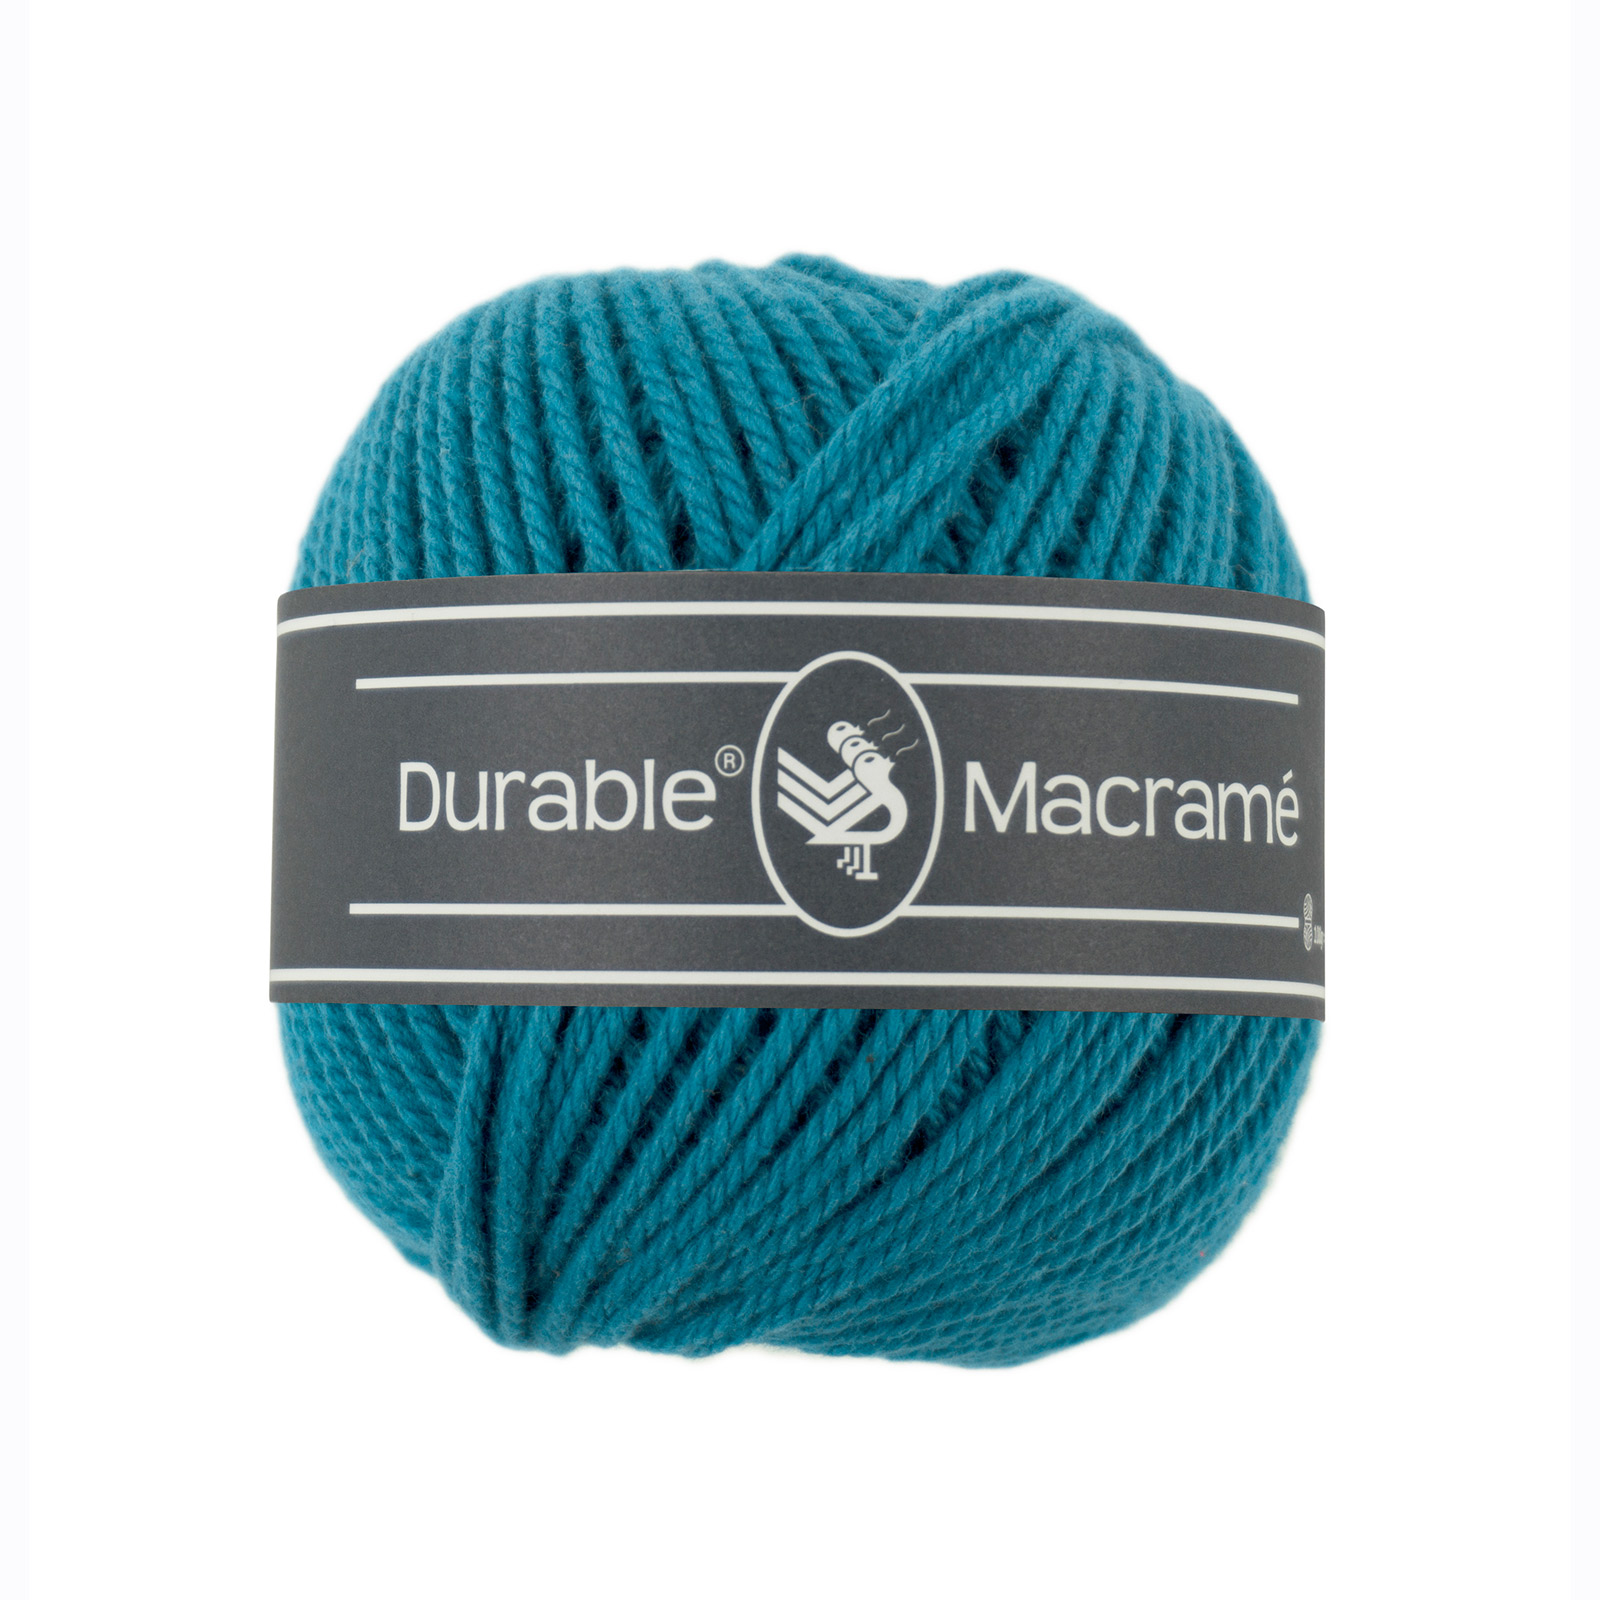 Durable Macrame Turquoise-371